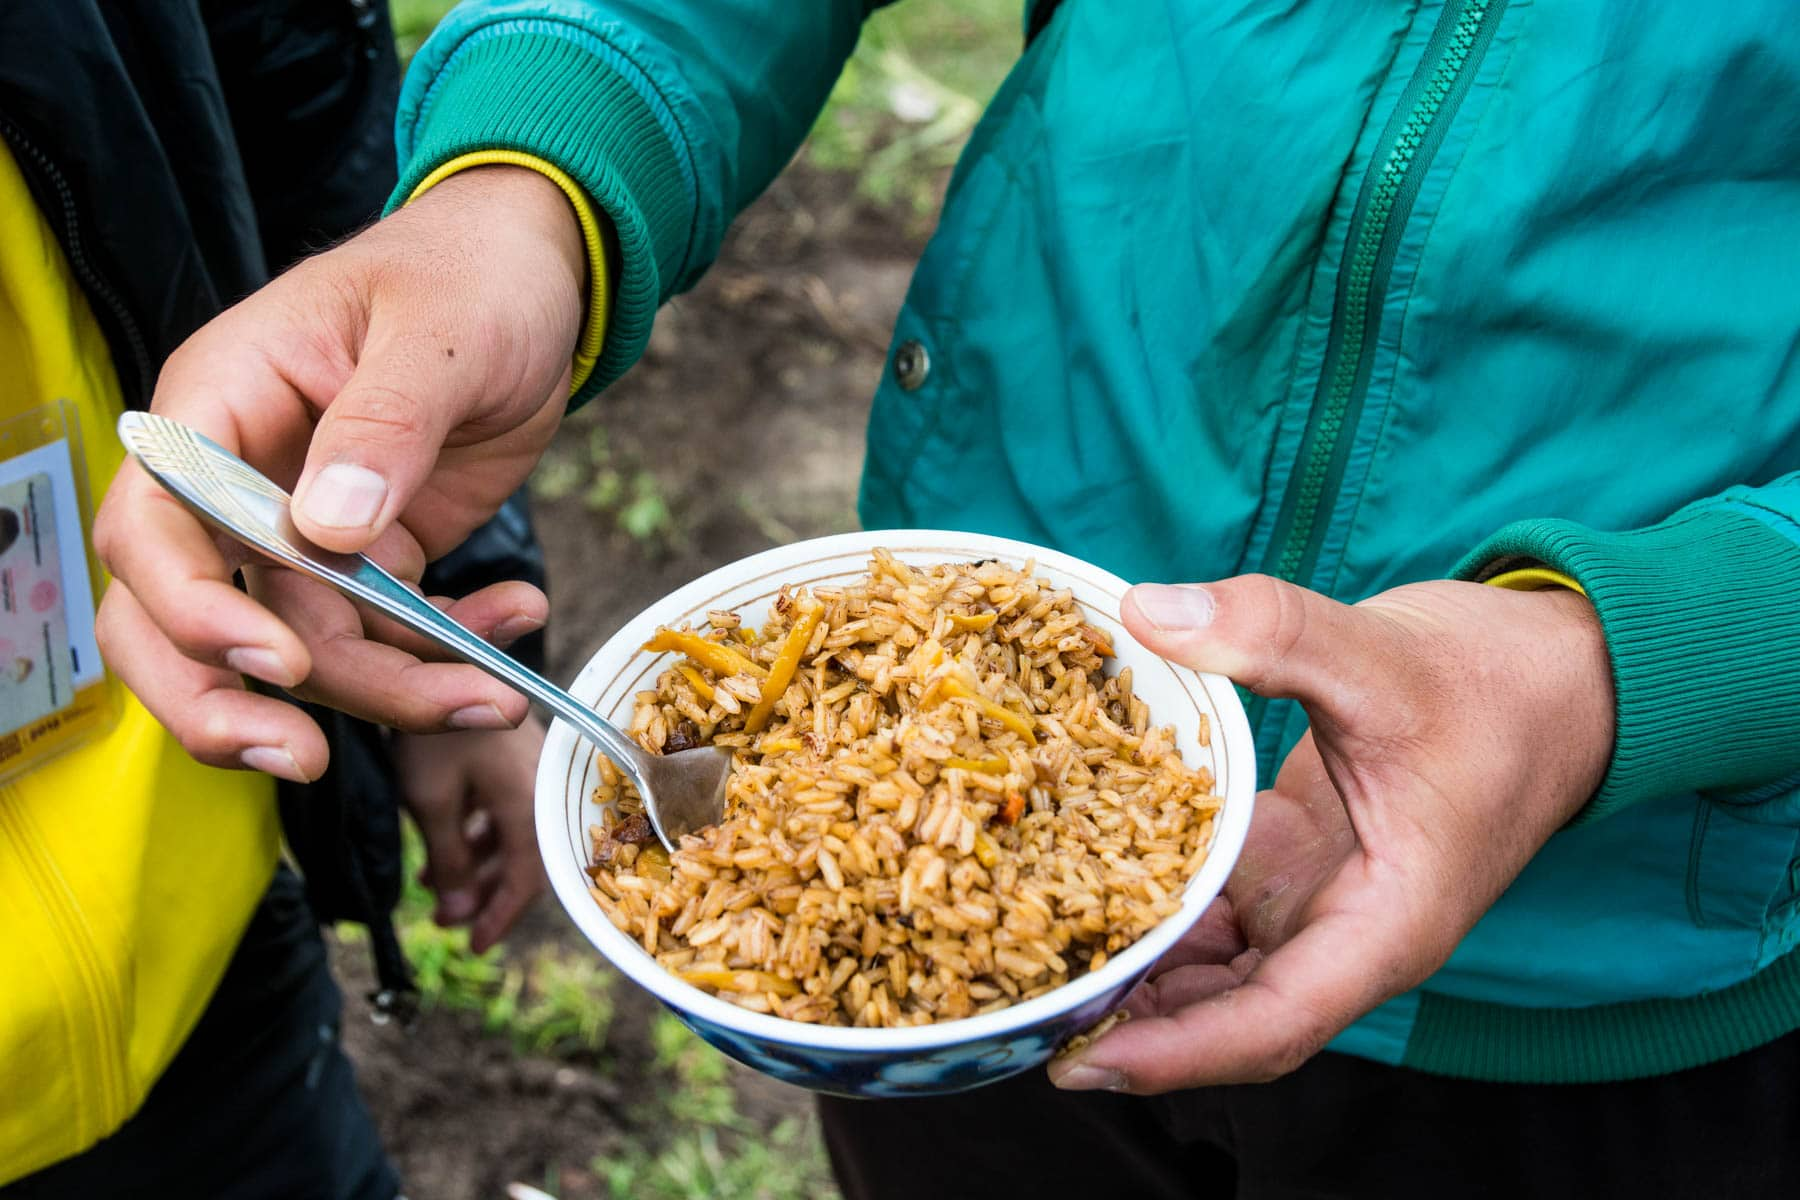 Free homemade plov at the 2016 World Nomad Games - Are the 2018 World Nomad Games worth the trip? - Lost With Purpose